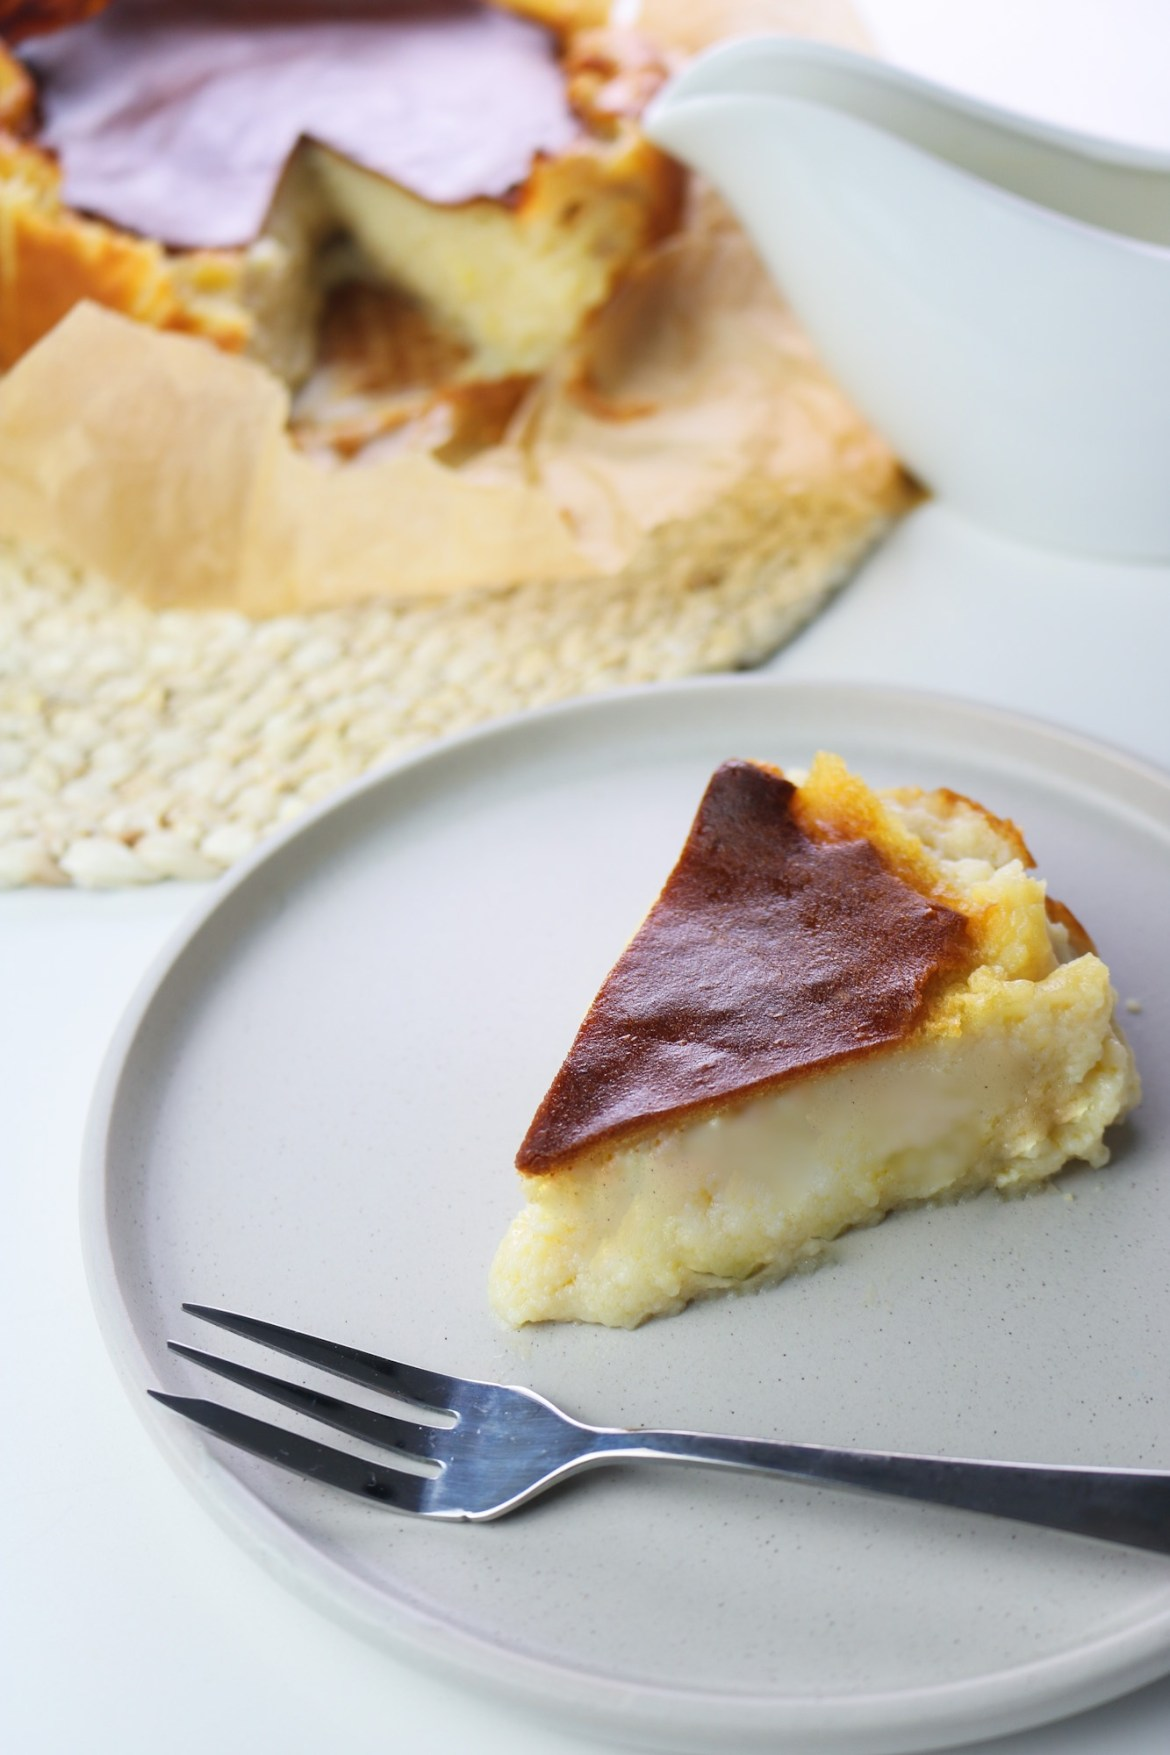 whole vegan burnt basque cheesecake on the background and slice served on a plate with a dessert fork